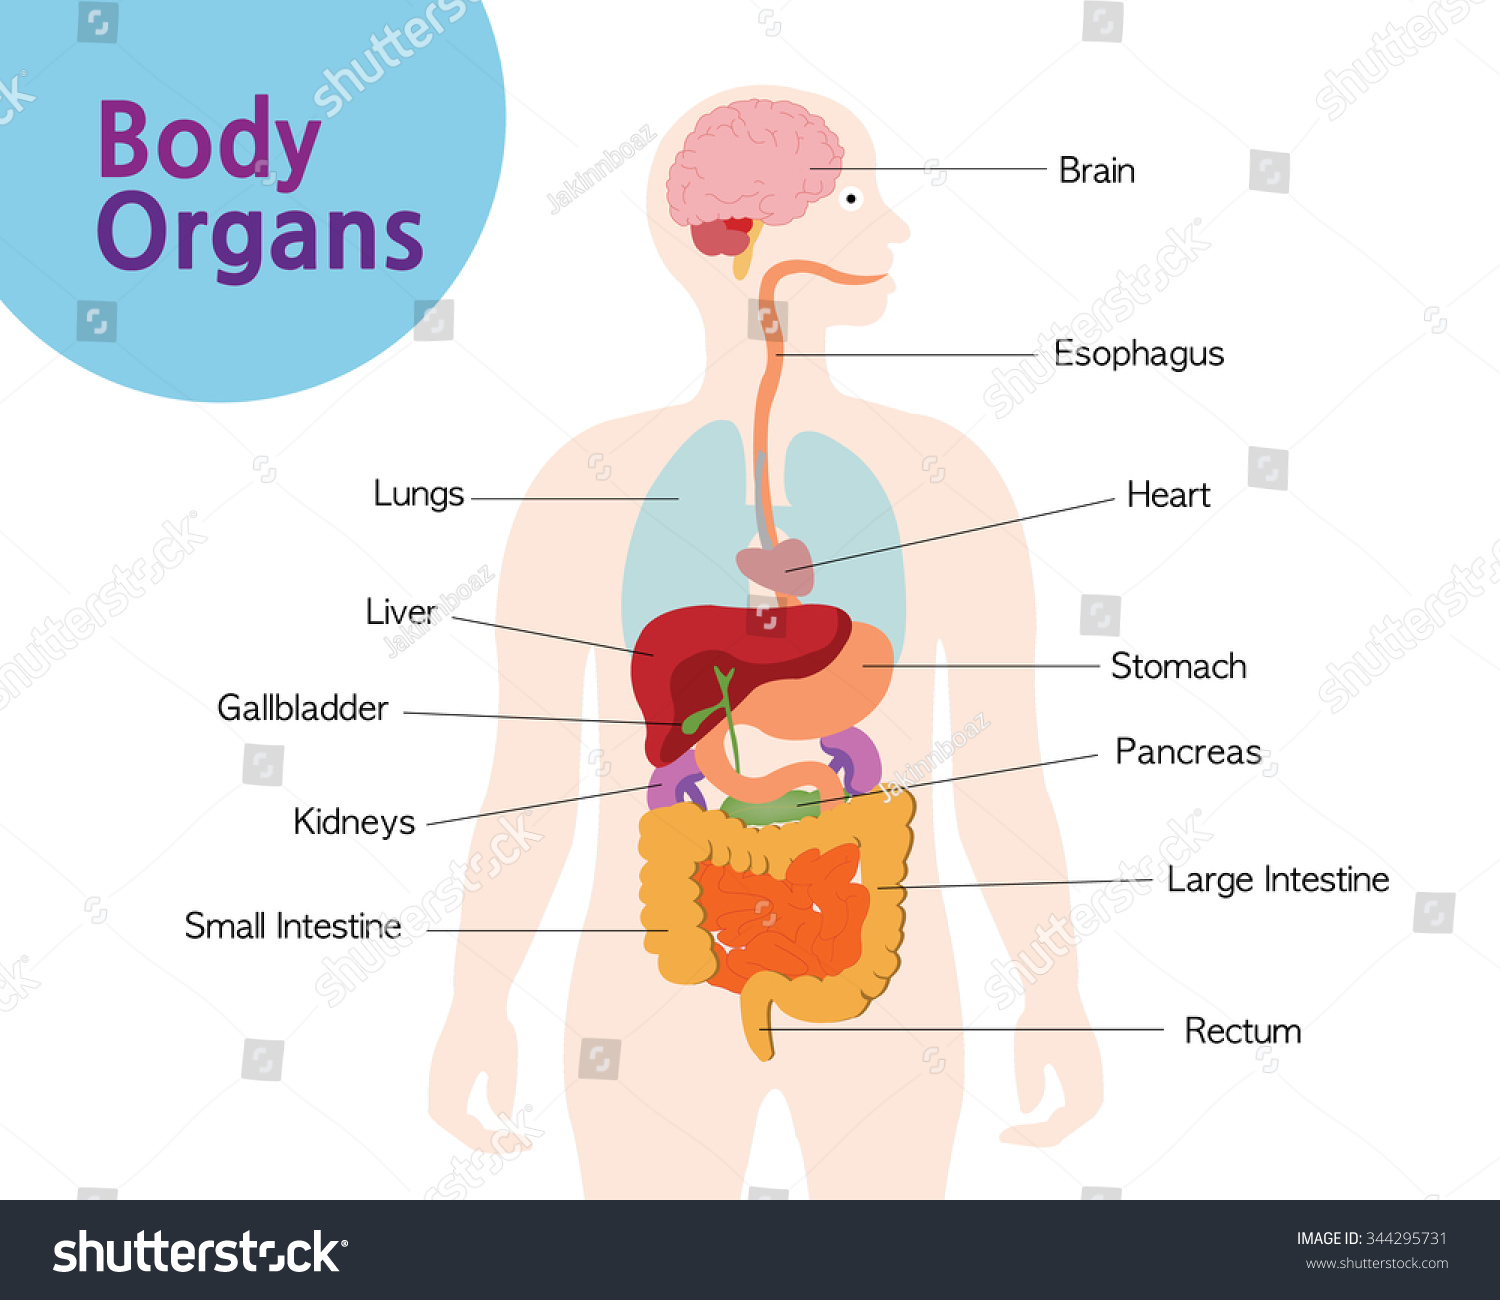 Picture Organs Your Body Stock Vektorgrafik Lizenzfrei 344295731